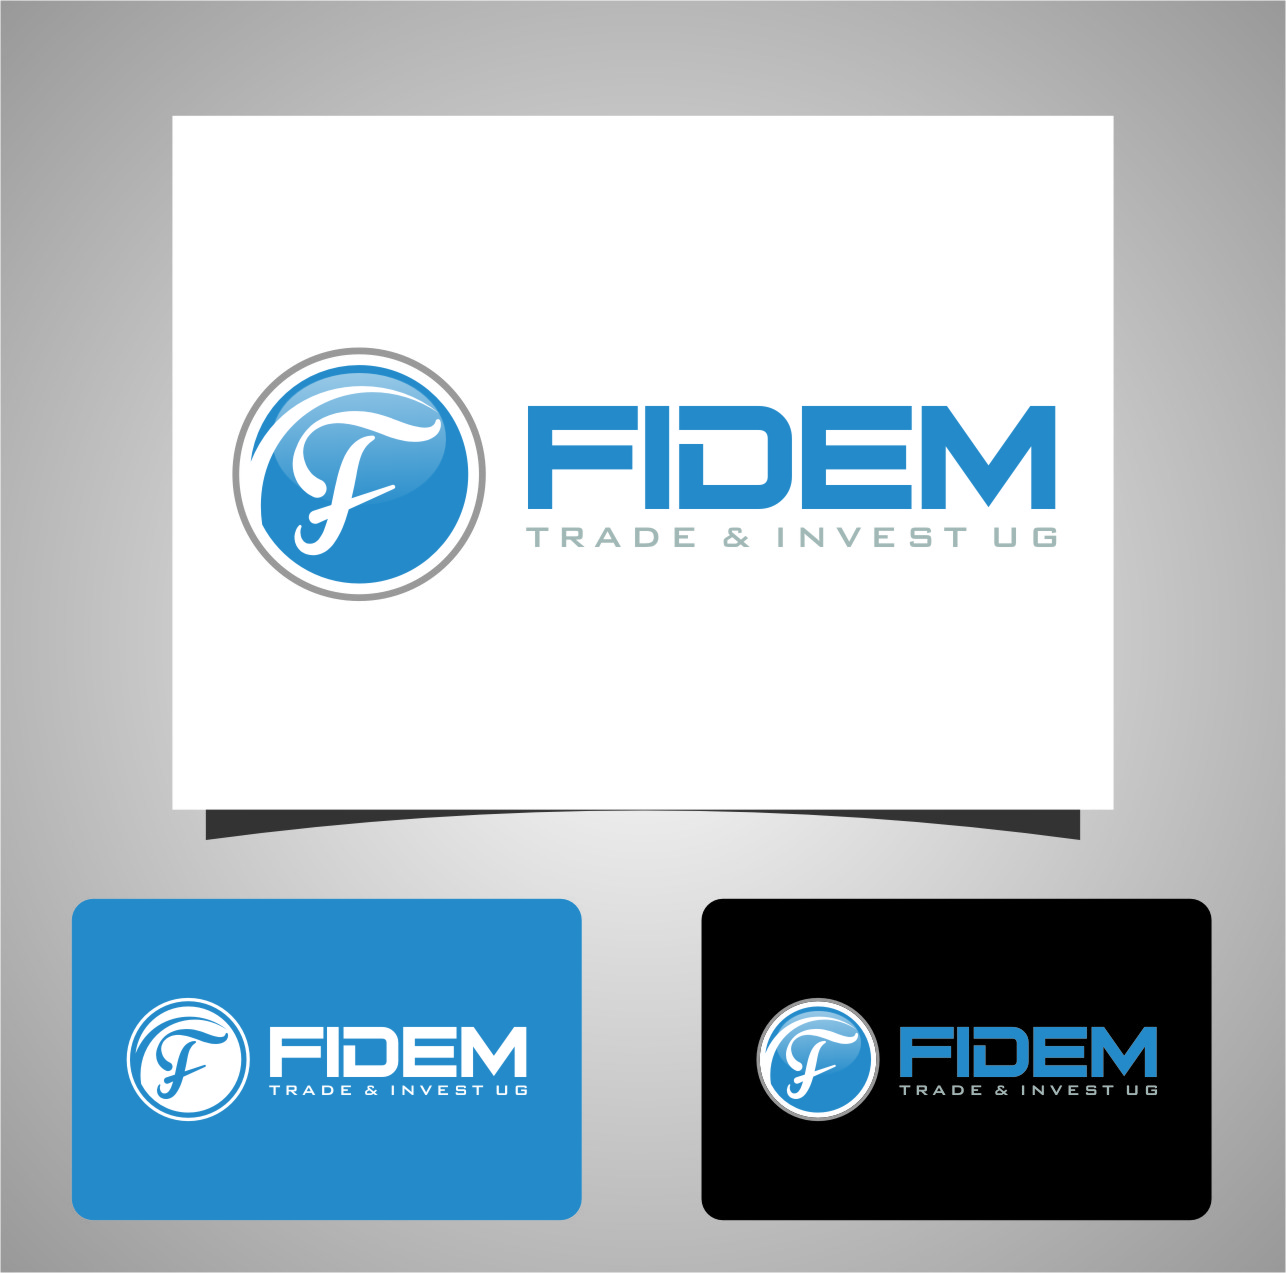 Logo Design by Ngepet_art - Entry No. 666 in the Logo Design Contest Professional Logo Design for FIDEM Trade & Invest UG.